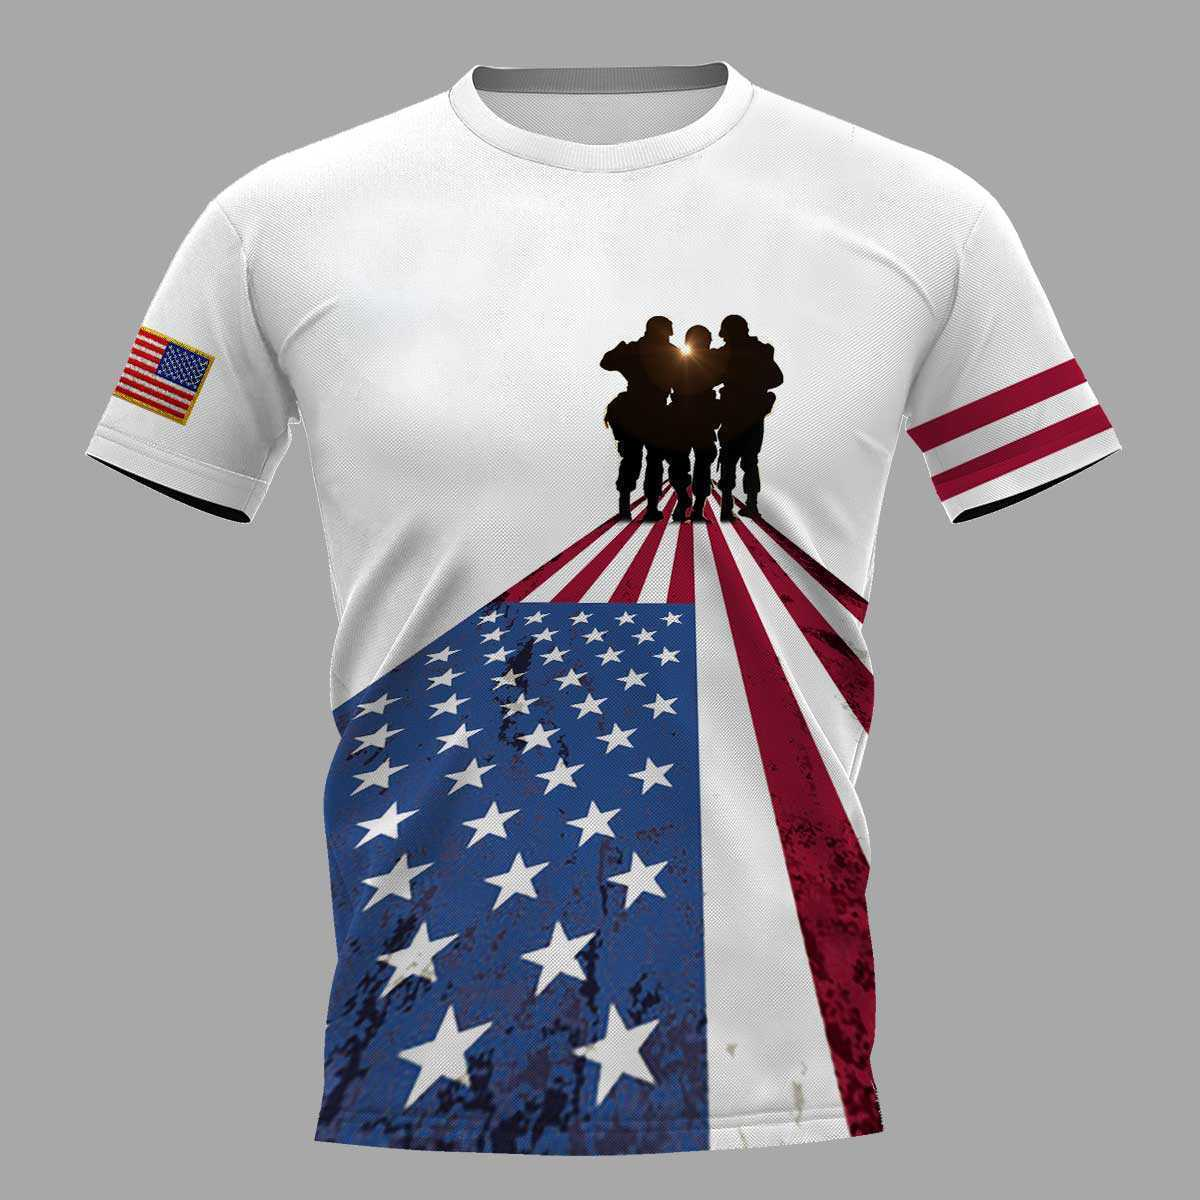 I took a dna test god is my father veterans are my brothers all over print tshirt